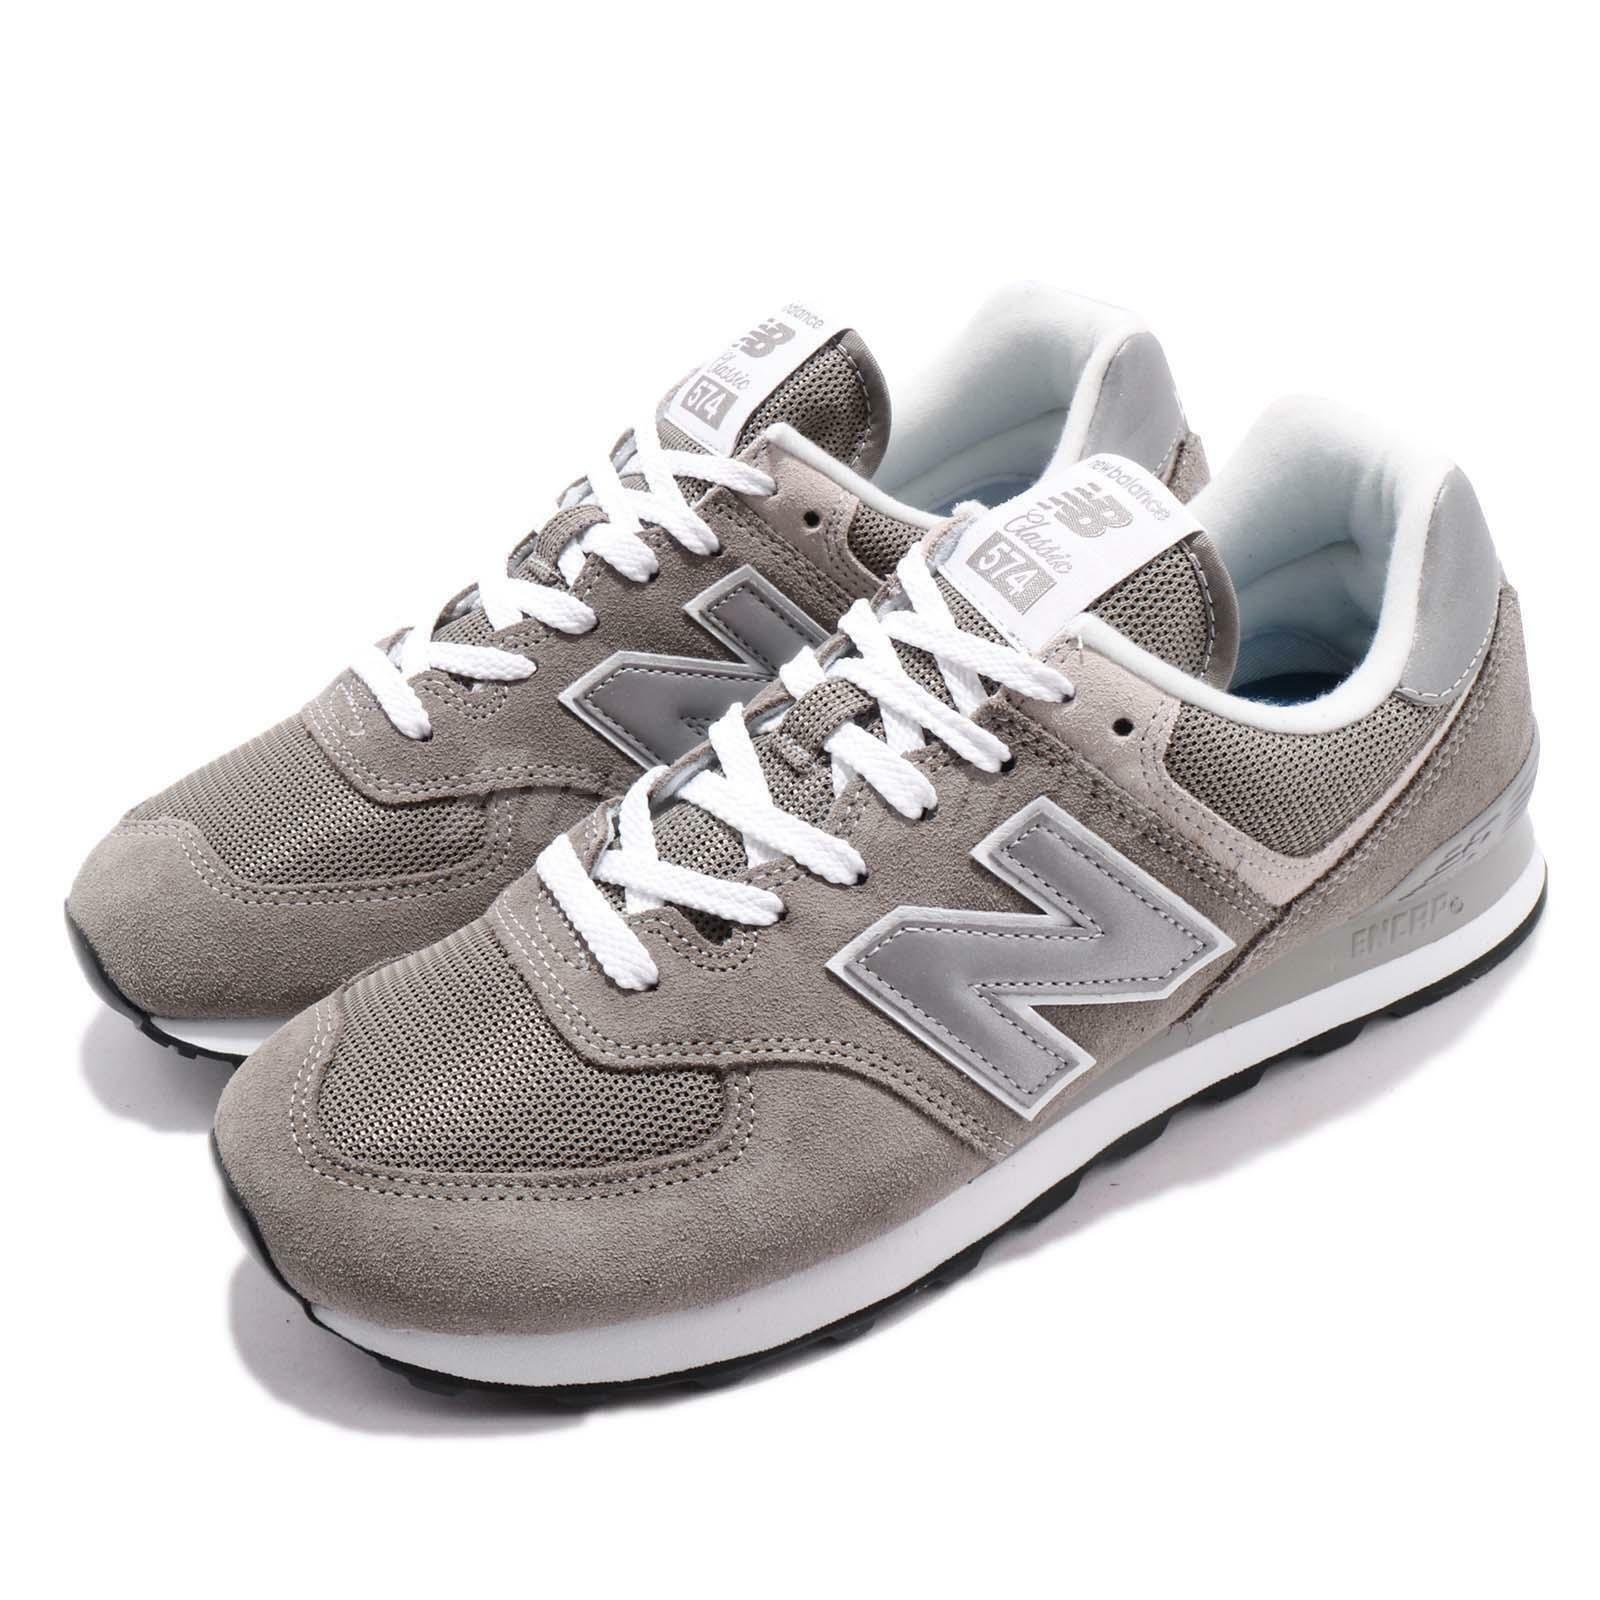 New  Balance WL574EG B 574 Grey White Women Running shoes Sneakers WL574EGB  factory outlet